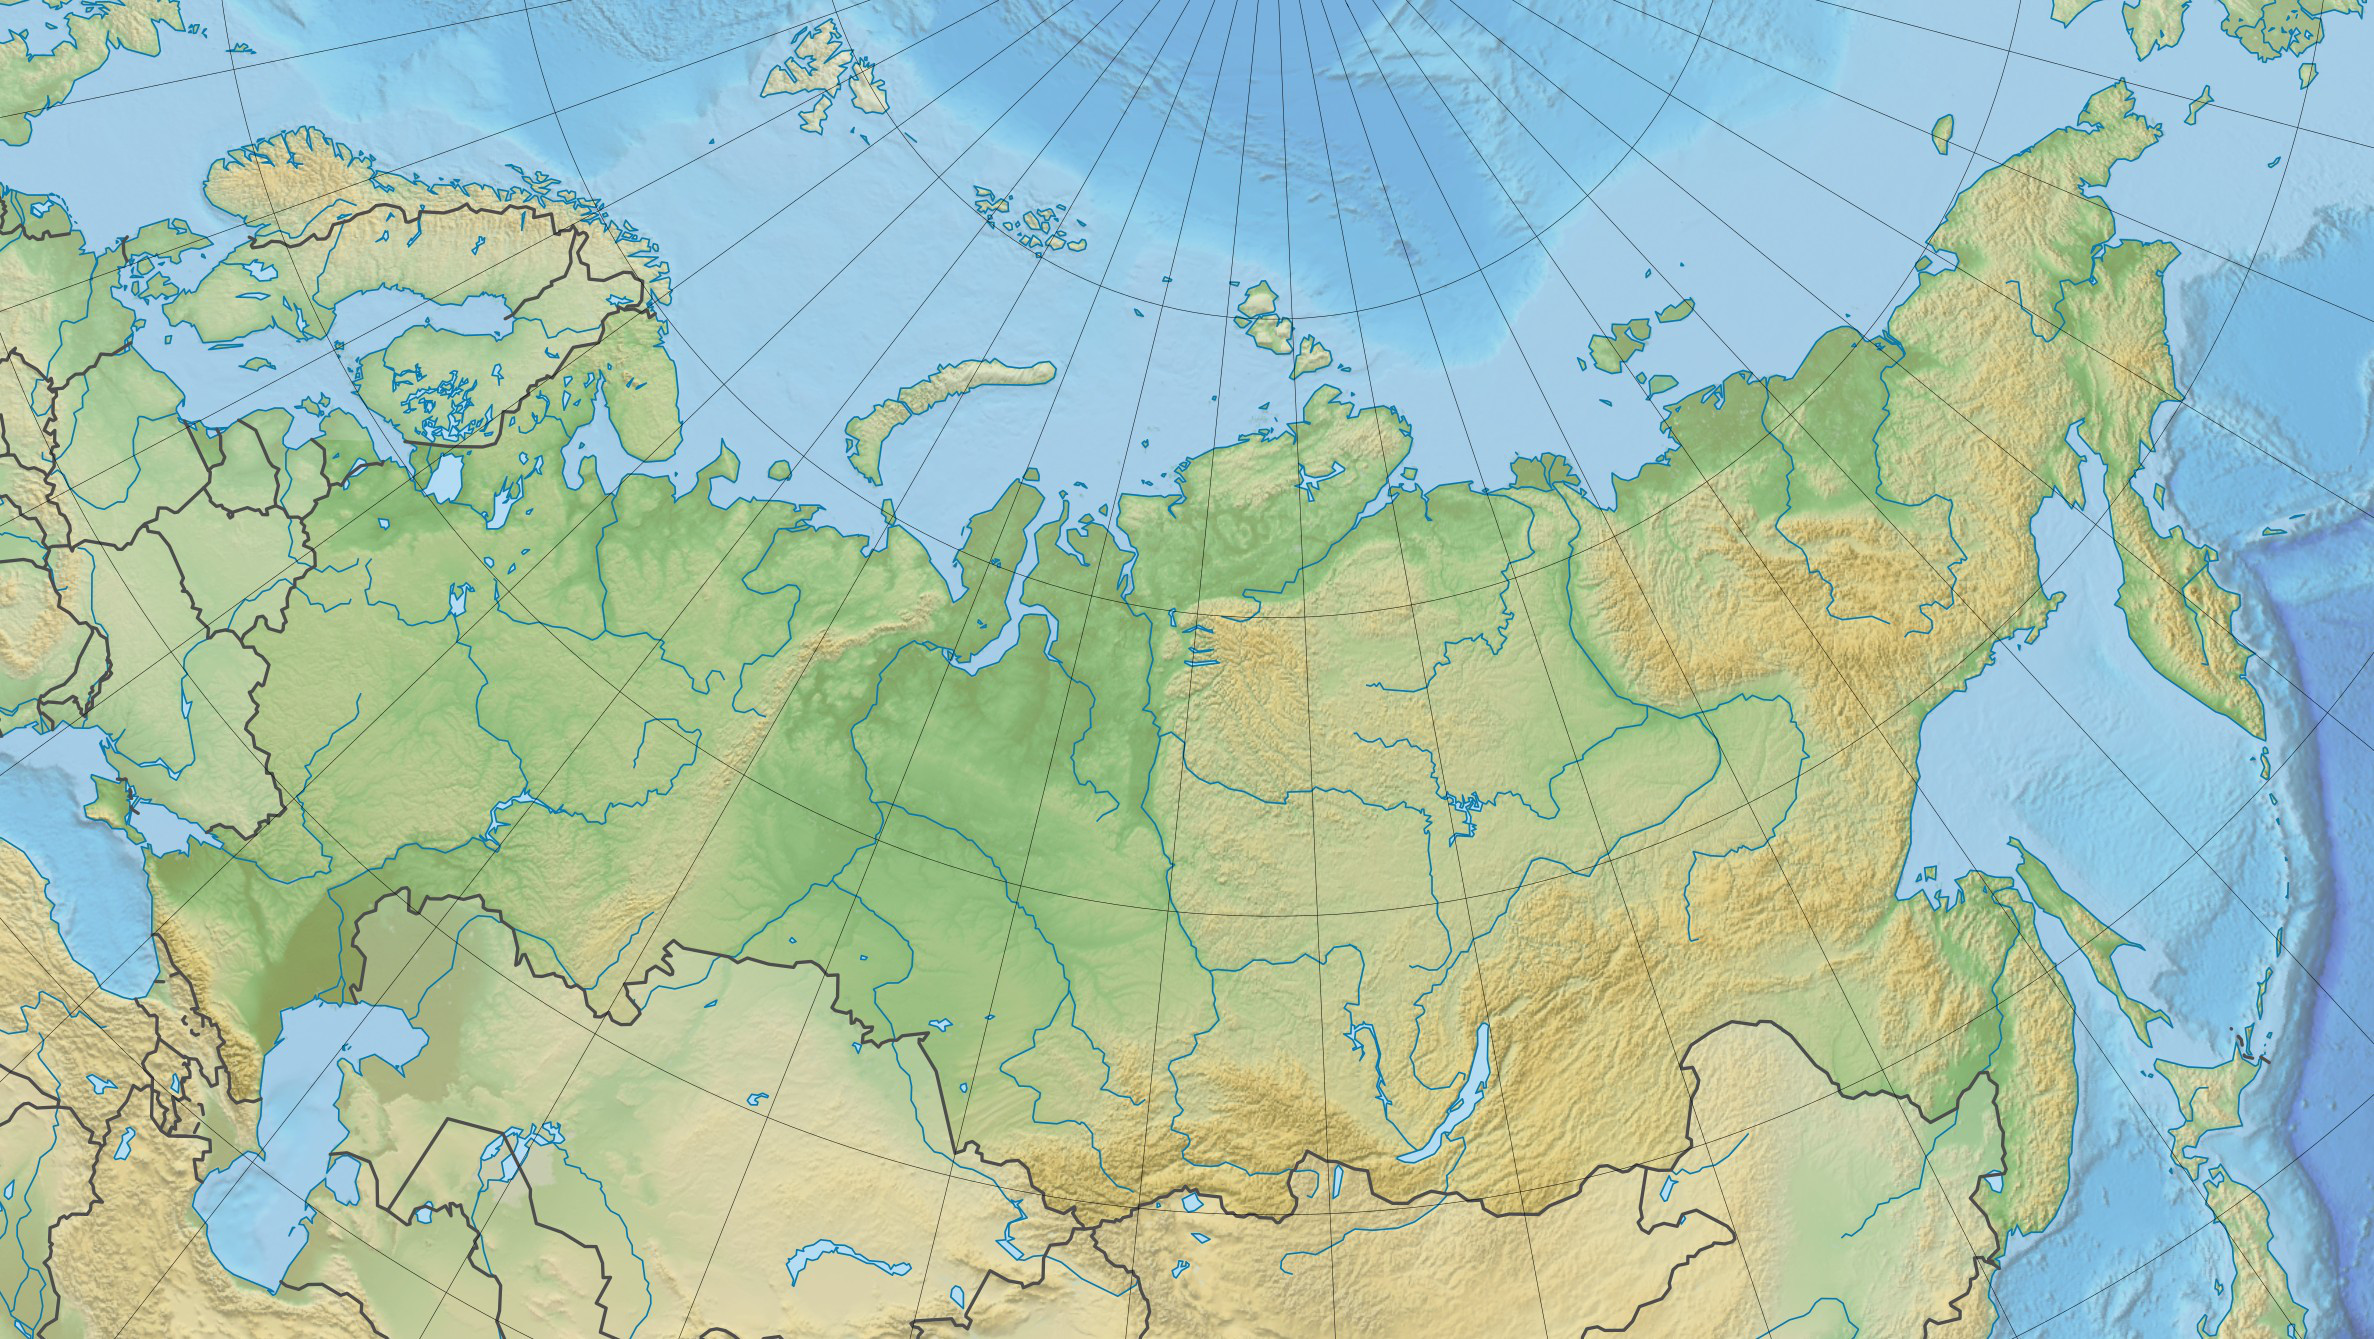 FileRussia Physical Location Mapjpg Wikimedia Commons - Physical map of russia